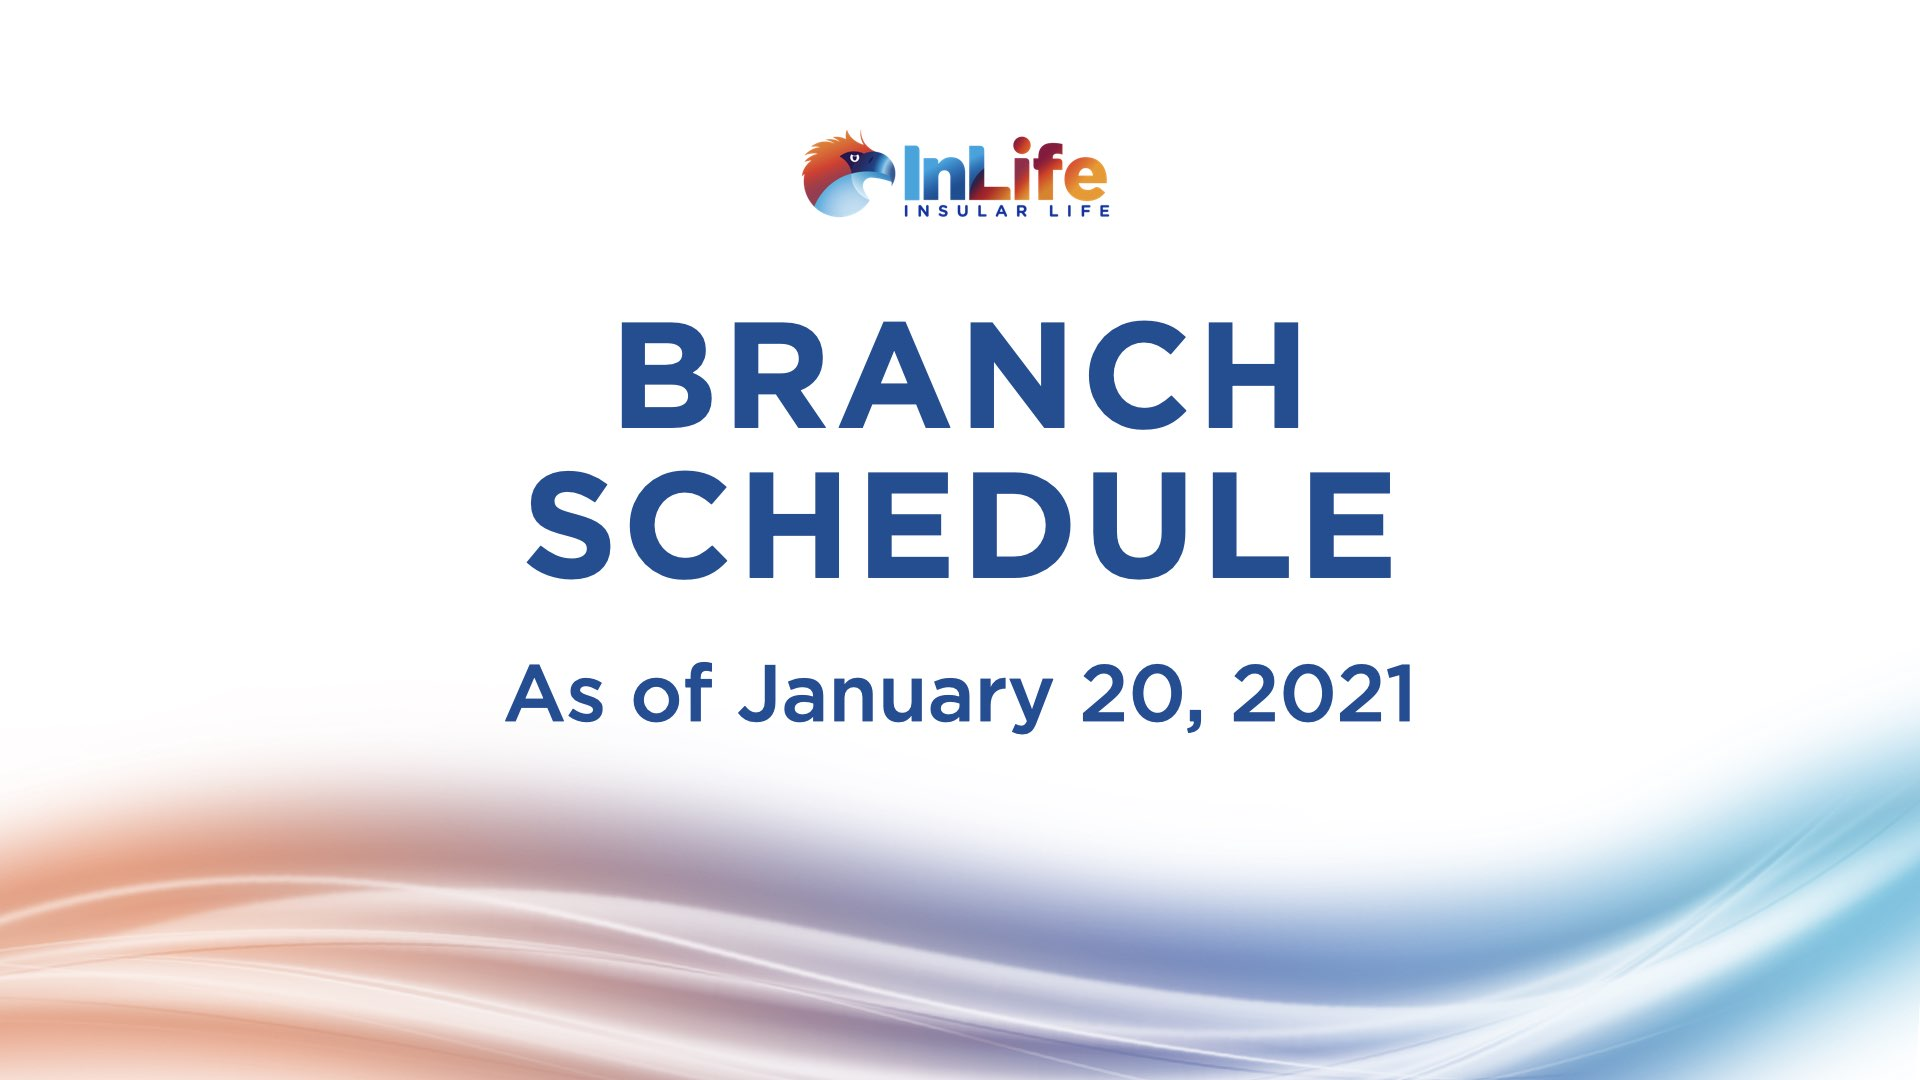 InLife Branch Schedule as of Jan 20, 2021